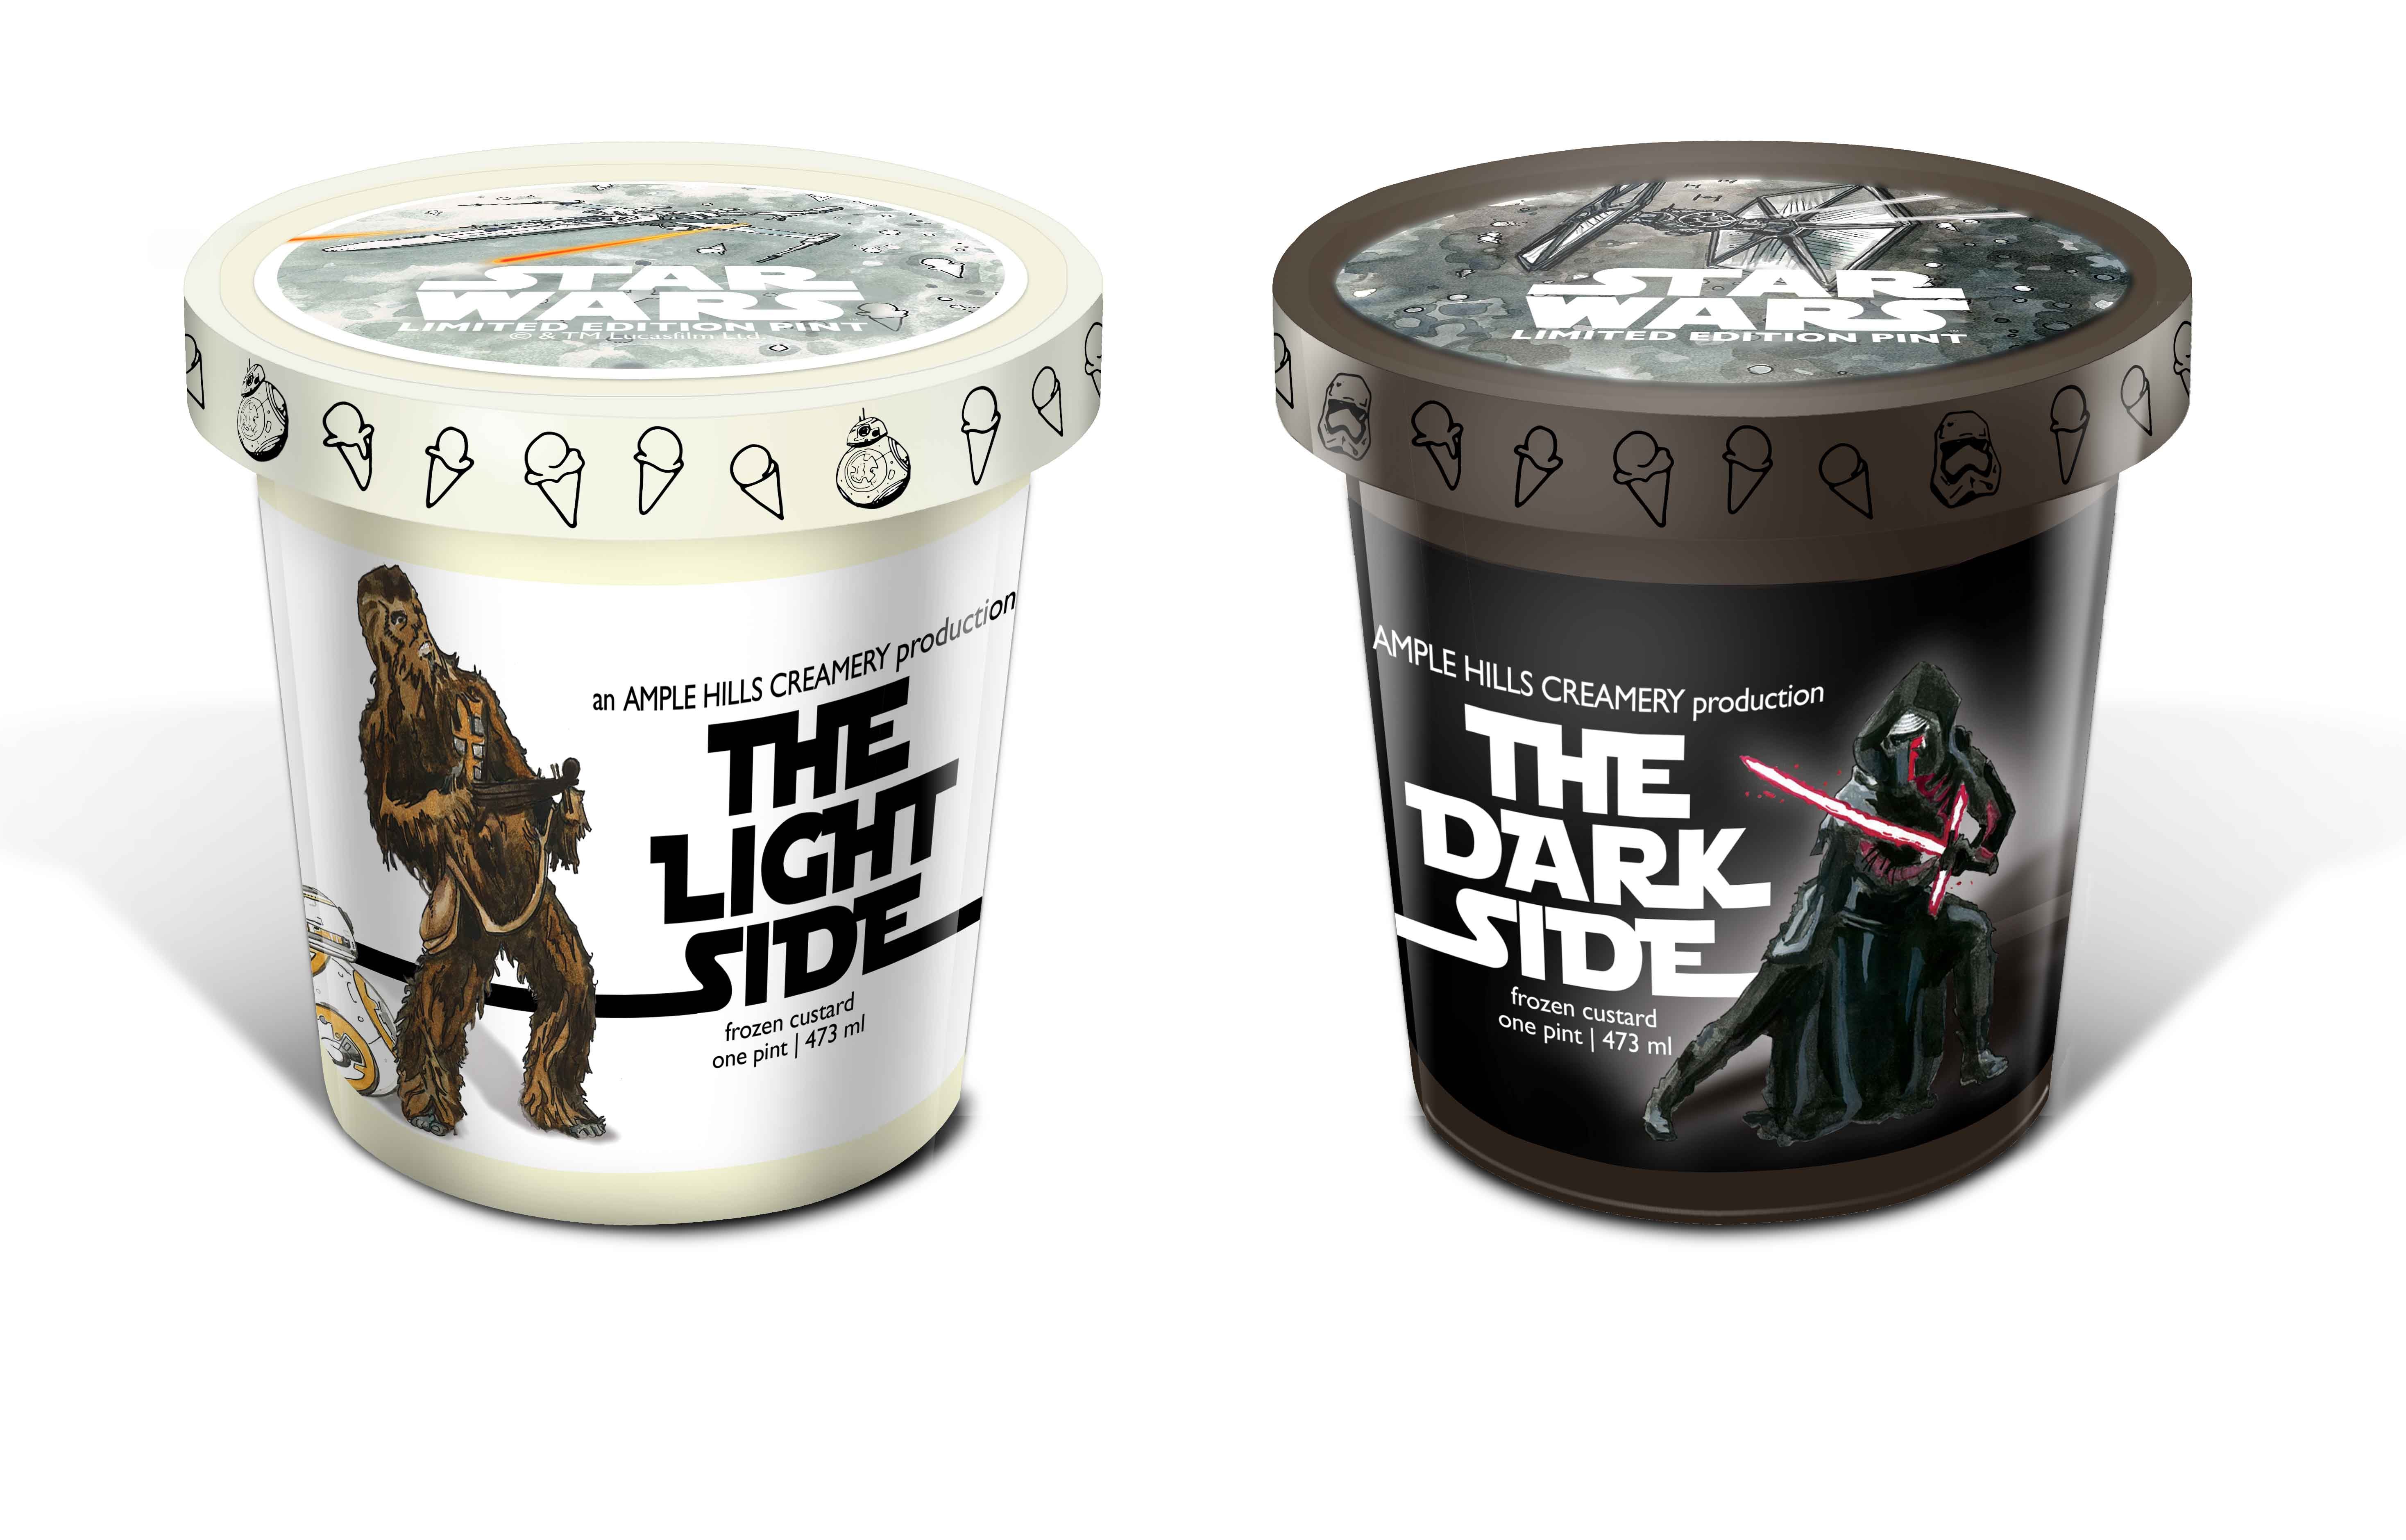 Star Wars ice cream - Ample Hills Creamery